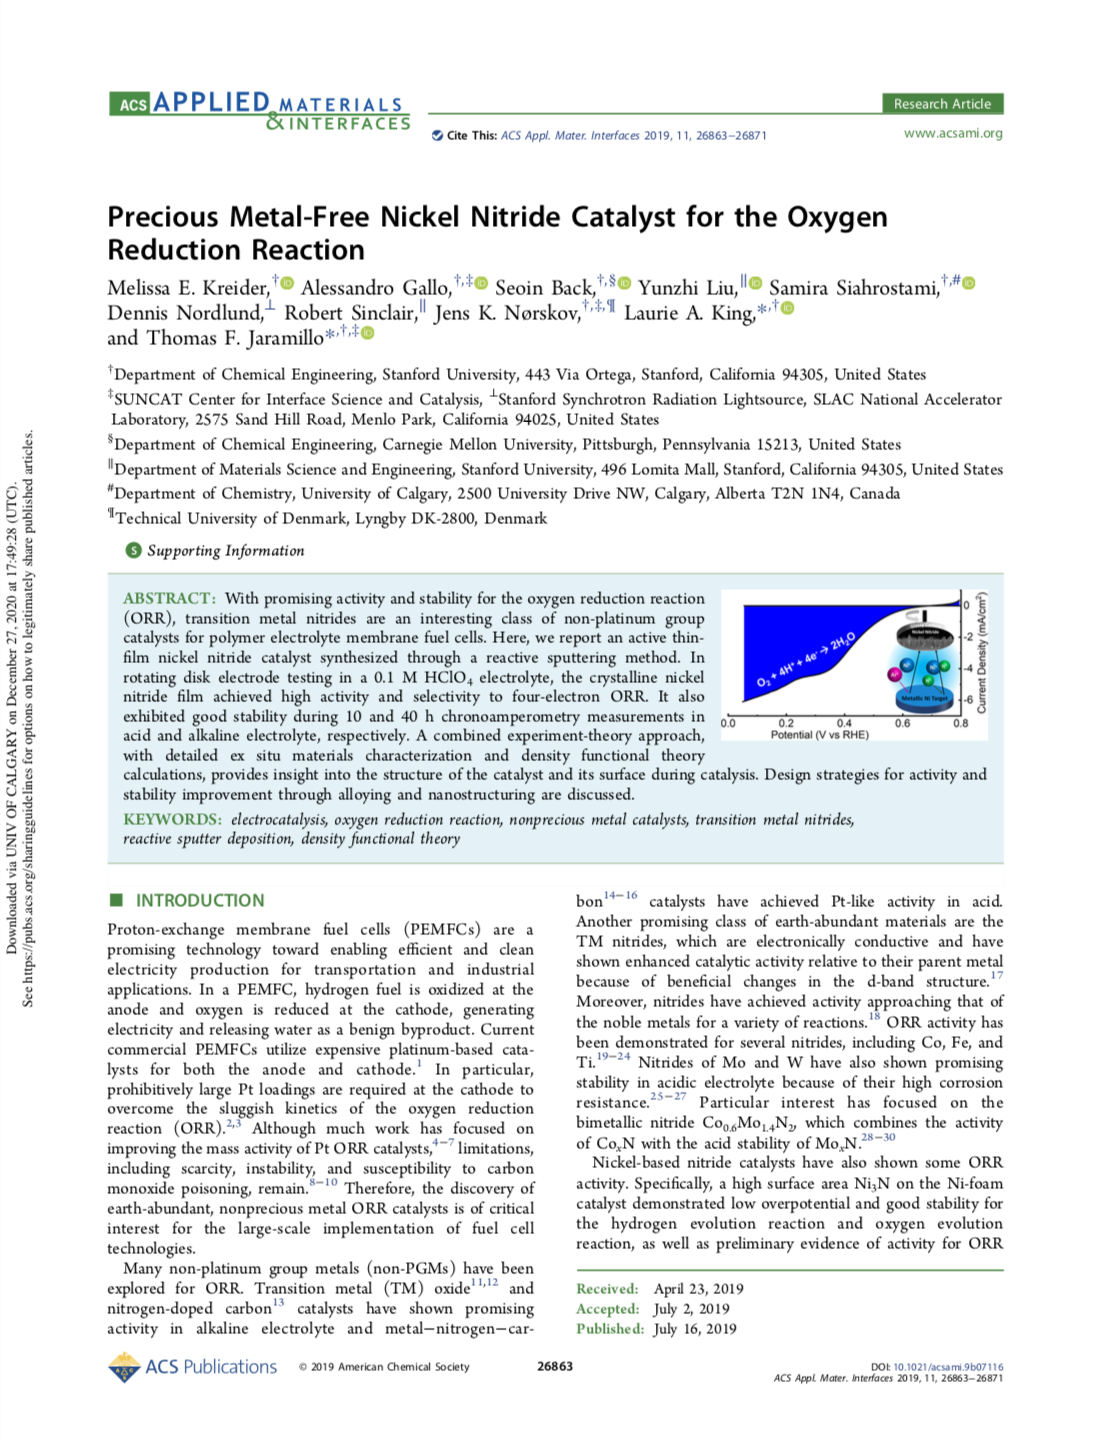 Precious Metal-Free Nickel Nitride Catalyst for the Oxygen Reduction Reaction